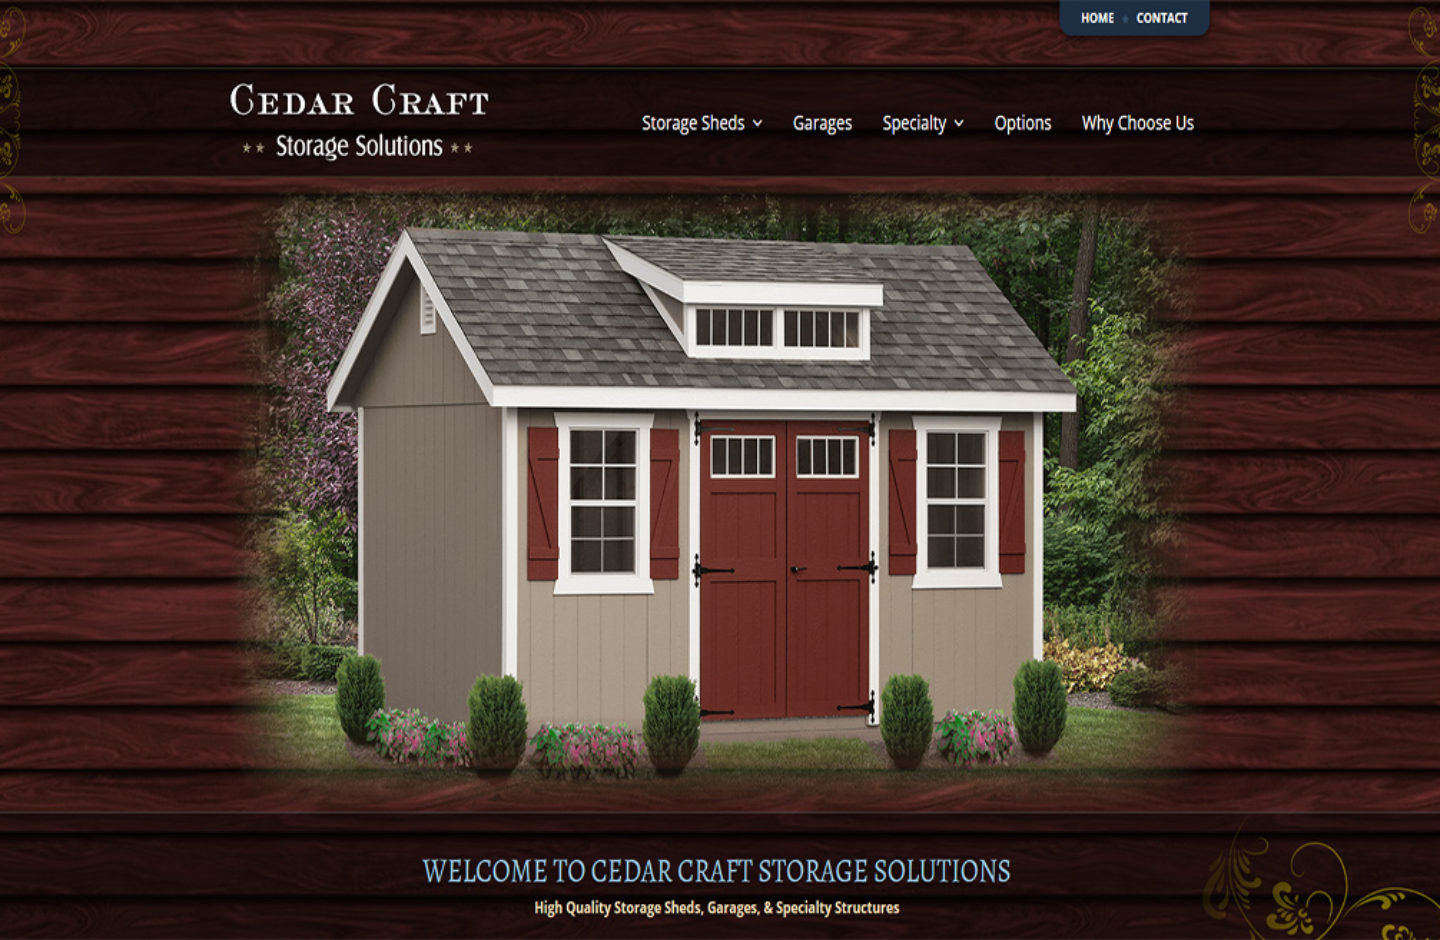 Cedar Craft Storage Sheds